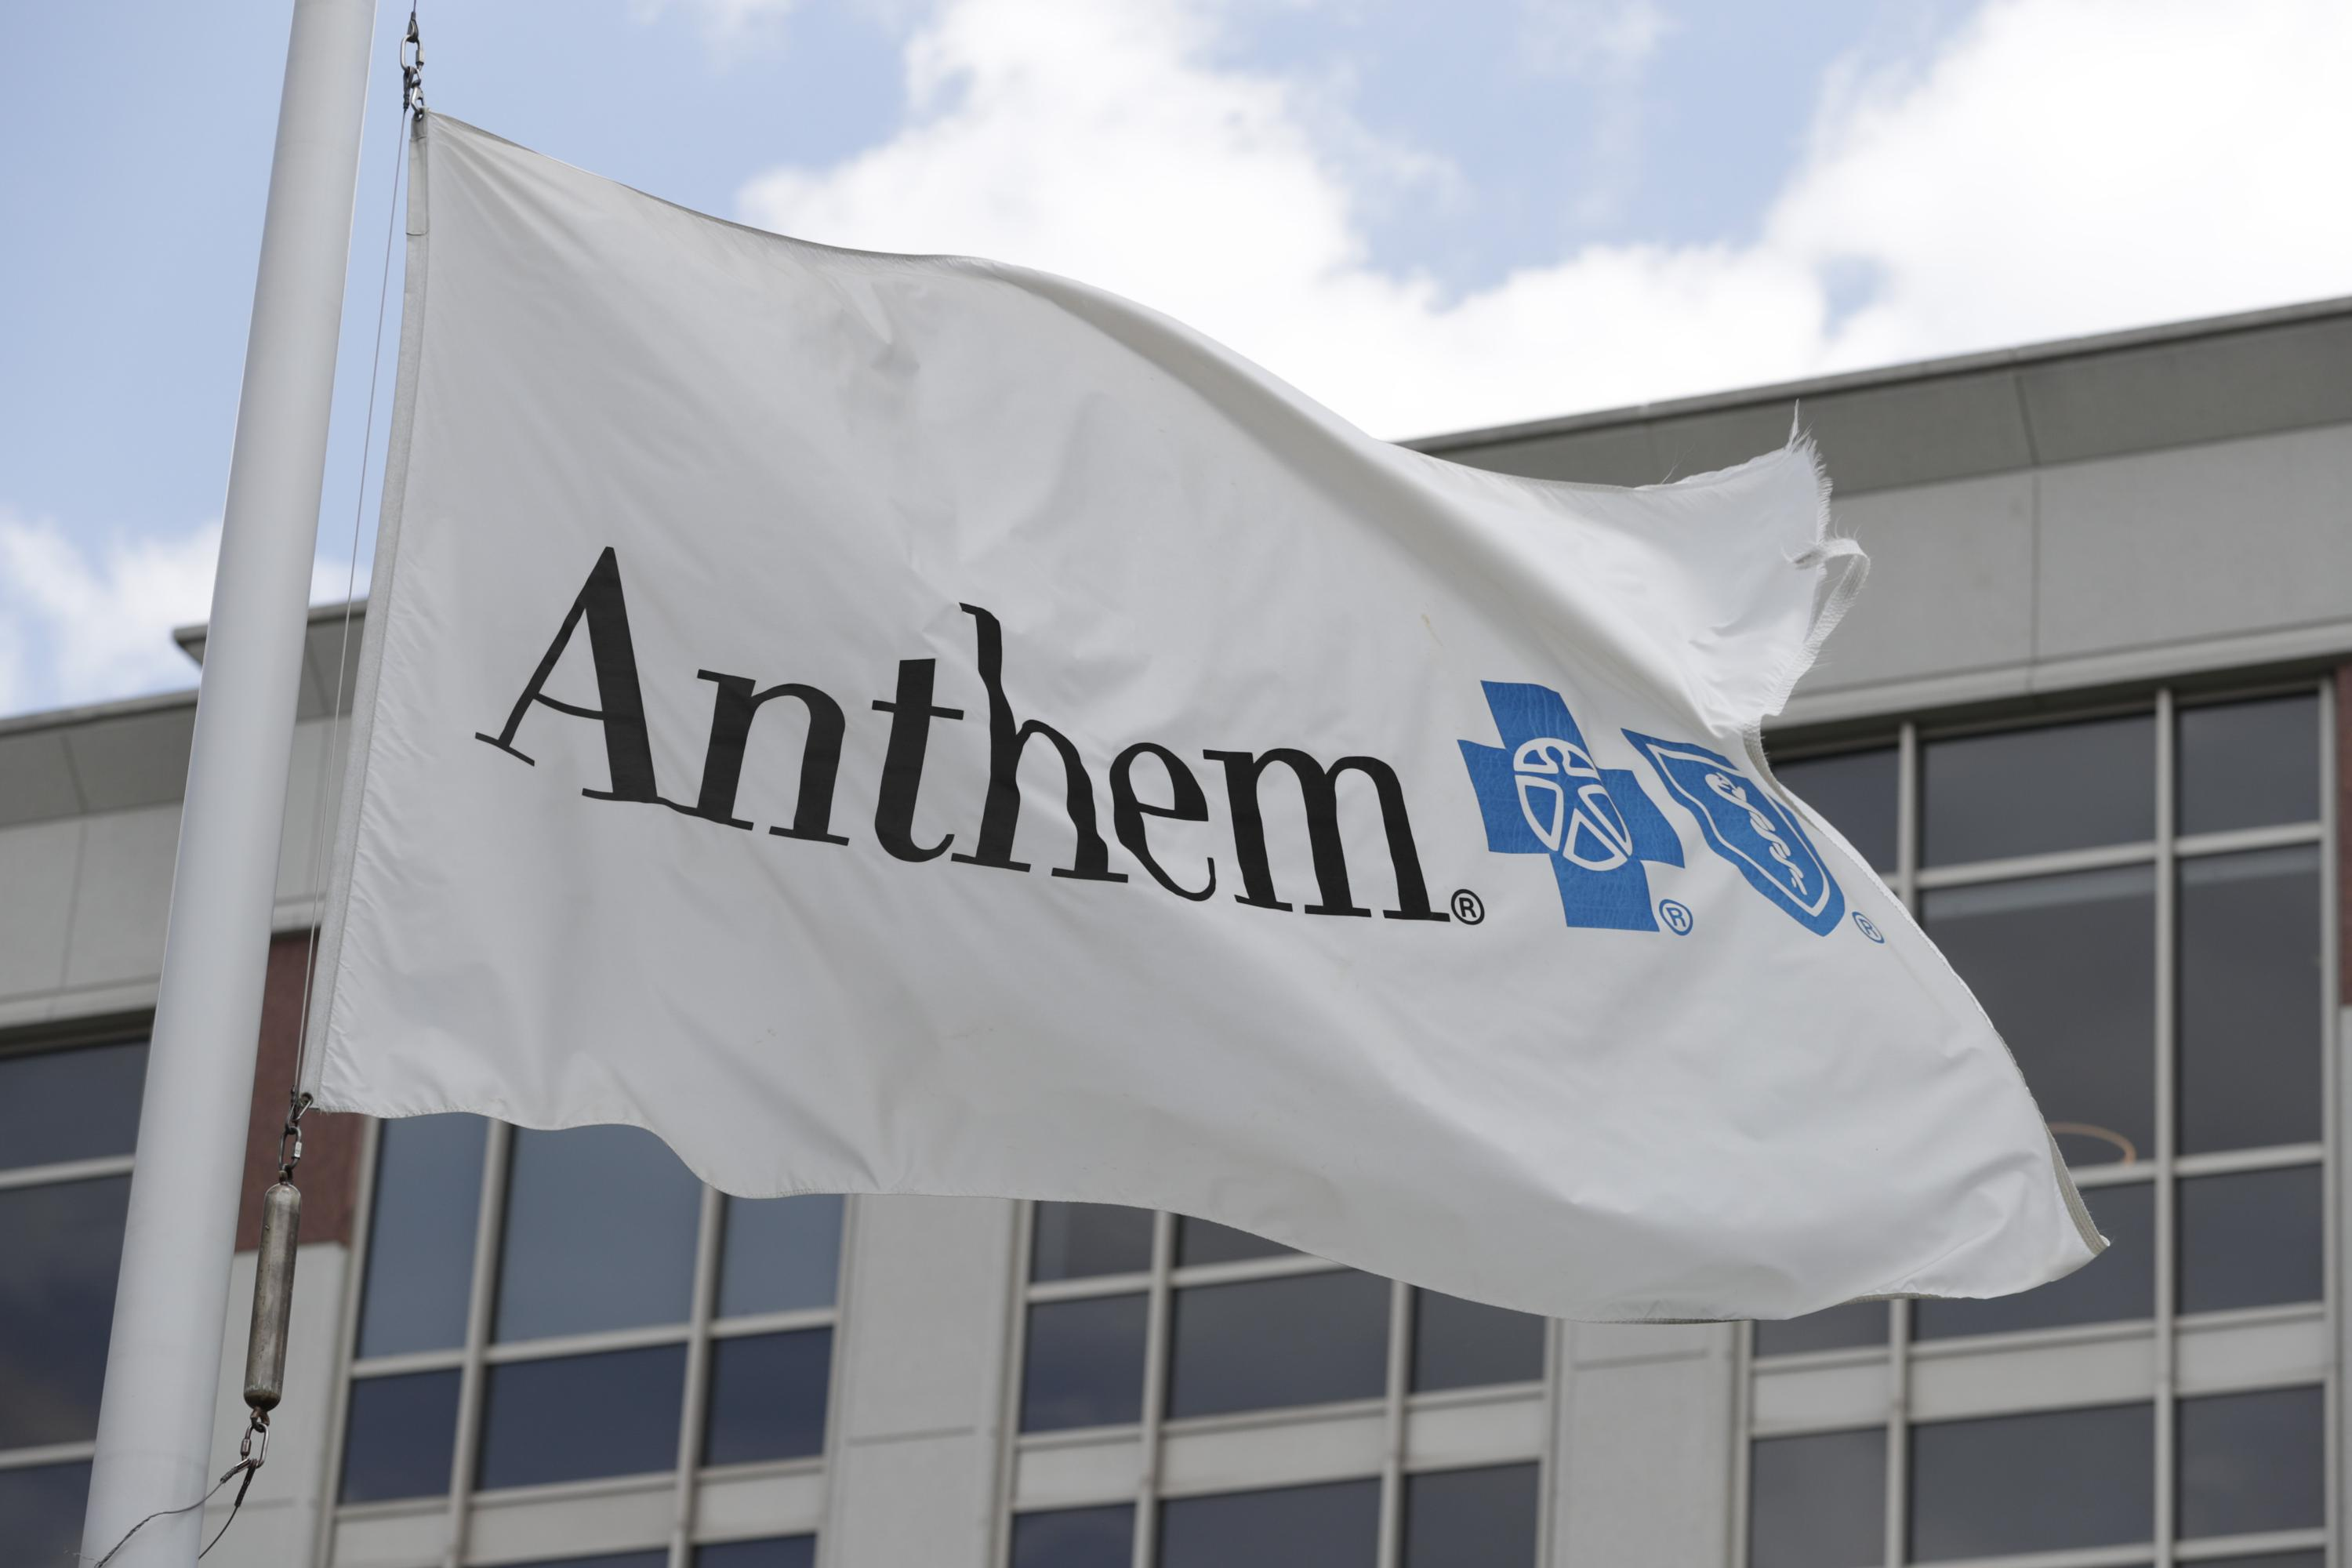 New enrollments push Anthem beyond expectations in Q1